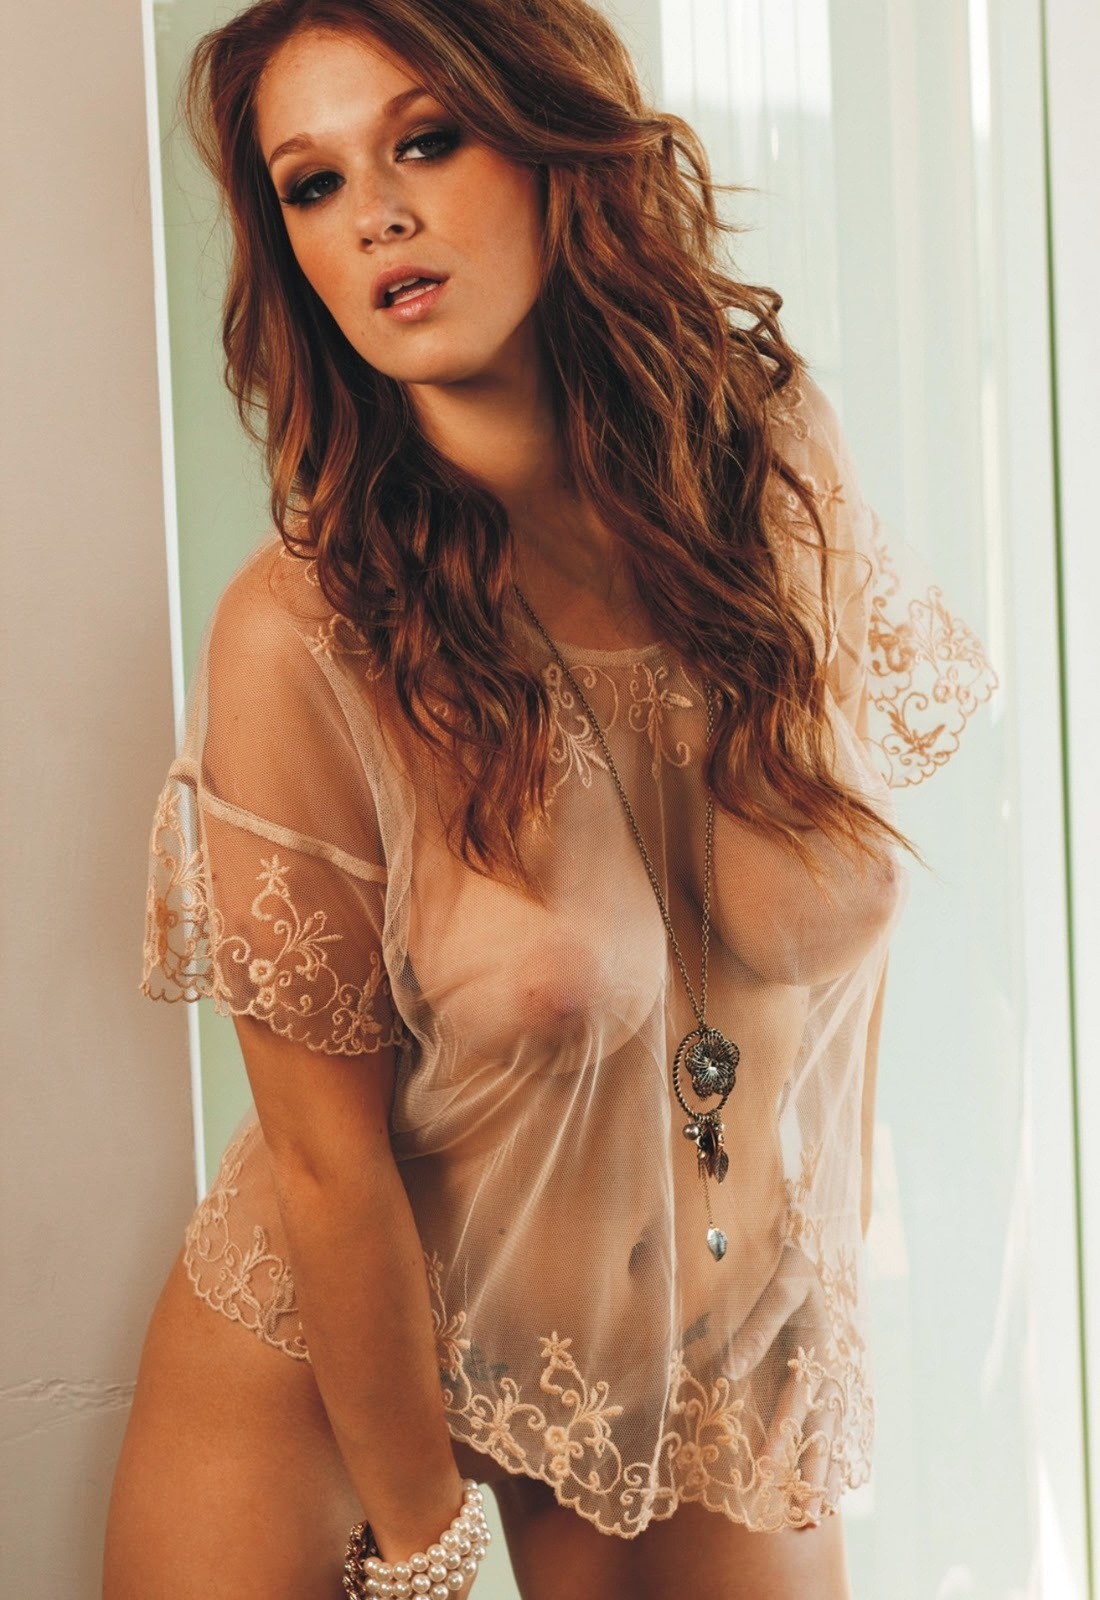 showing porn images for foxy di porn Amazing, Amazingbody, Attractive, Babe, Beautiful, Beautifulface, Beautifulgirl, Beauty, Bodacious, Boobs, Breasts, Busty, Curves, Curvy, Cute, Cuteface, Cutegirl, Eatable, Erotic, Femmestructure, Flatstomach, Fuckable, Ginger, Gorgeous, Hot, Hotbody, Hottie, Hourglass, Innocent, Innocenteve, Innocentlook, Lovely, Nature, Niceboobs, Nicebreasts, Nicerack, Nicetits, Nipples, Outdoor, Outdoornudity, Perfect, Perfectboobs, Perfectbreasts, Perfecttits, Pretty, Prettyface, Prettygirl, Redhair, Redhead, Seductive, Sensual, Sexy, Sexybabe, Sexybody, Sideface, Slim, Slimbody, Suckable, Sultry, Tits, Water, Waterbody, Wow, Yummy